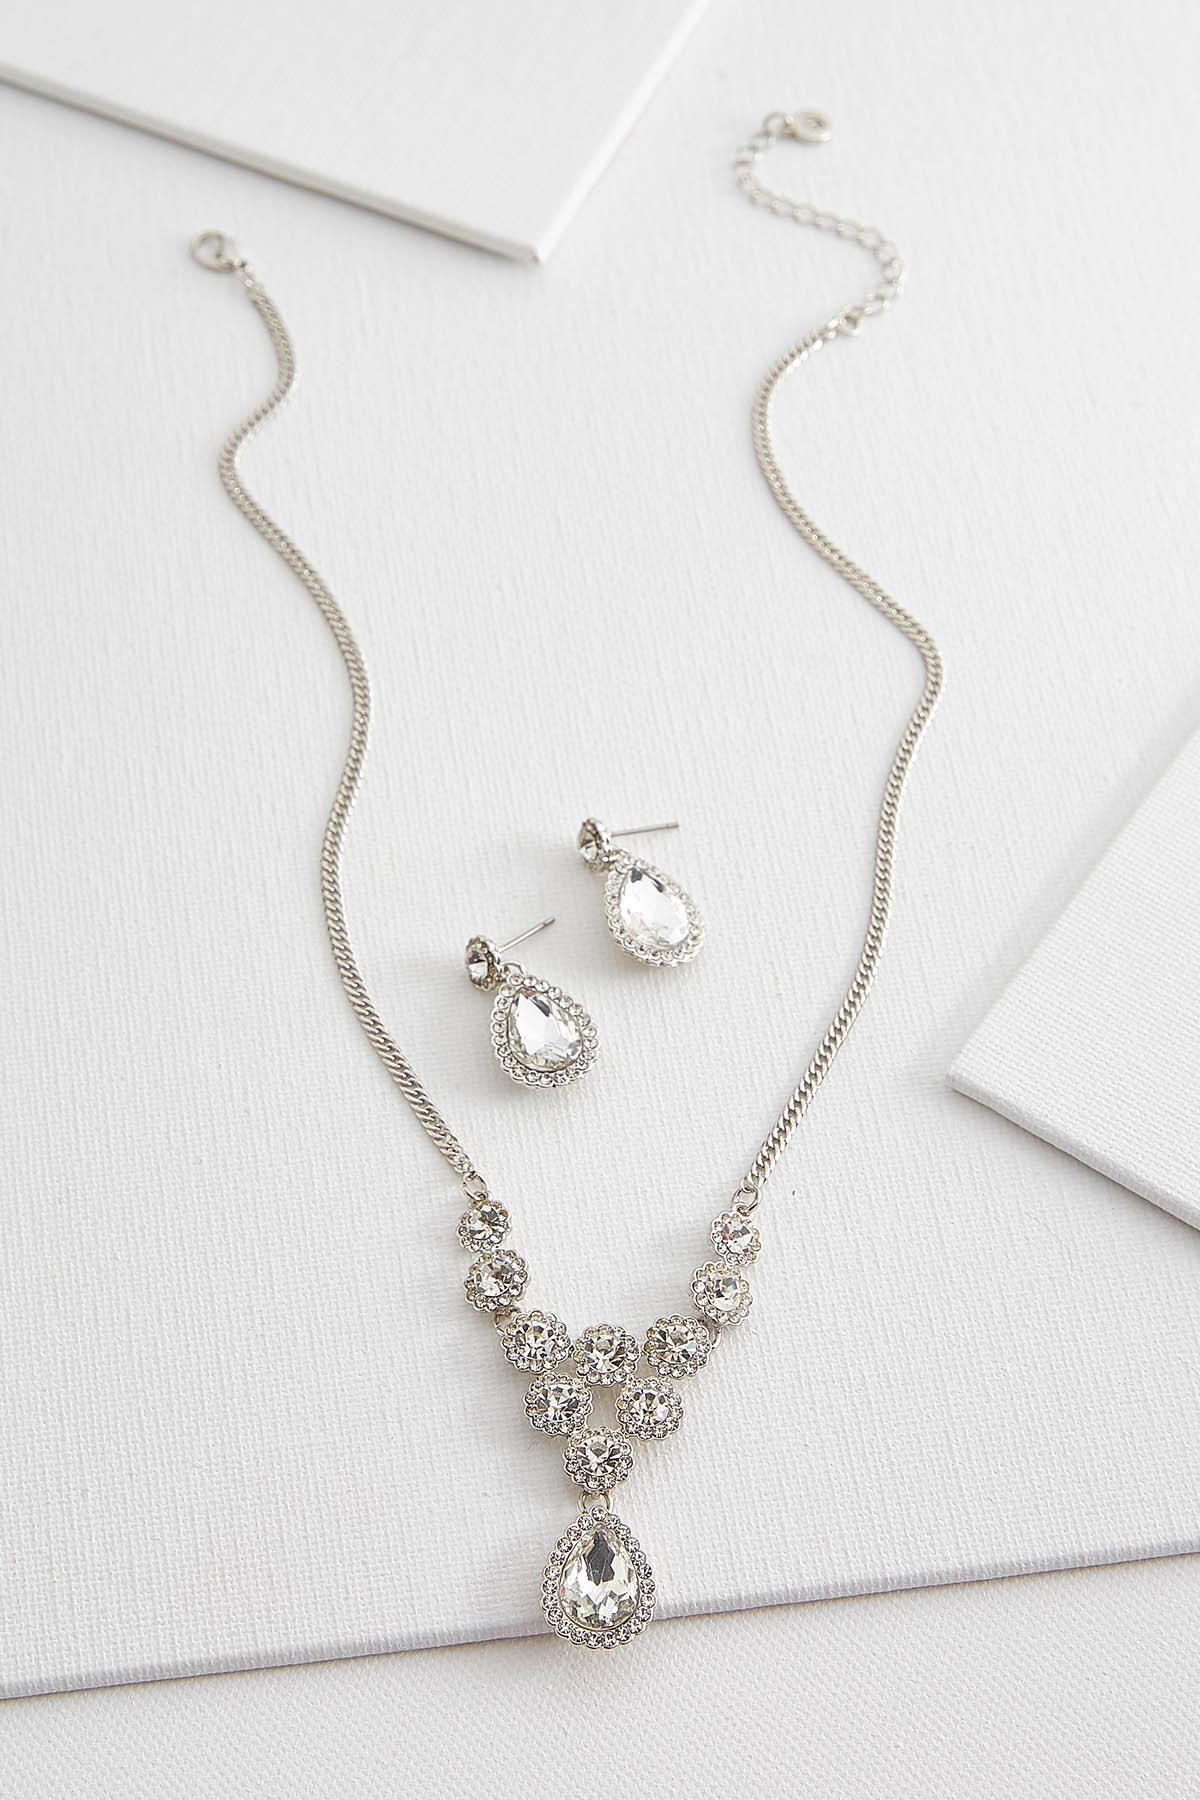 Tears And Stones Necklace Set